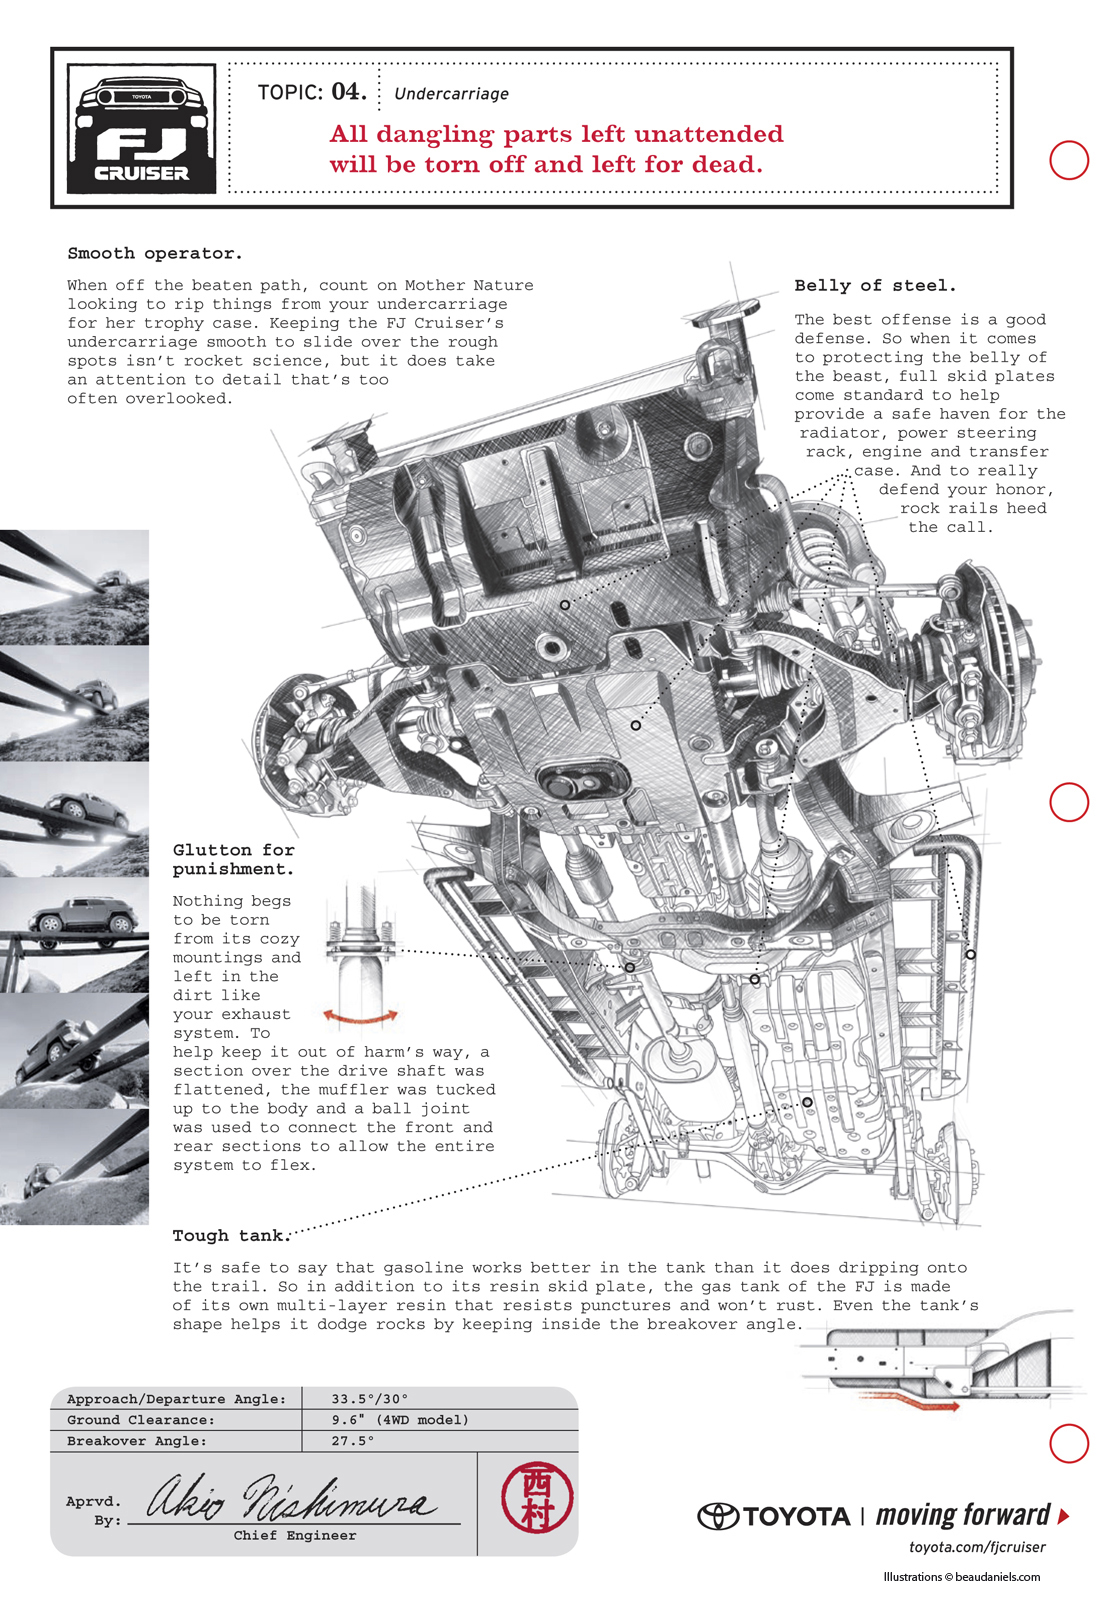 1997 Toyota Land Cruiser Engine Diagram • Wiring Diagram